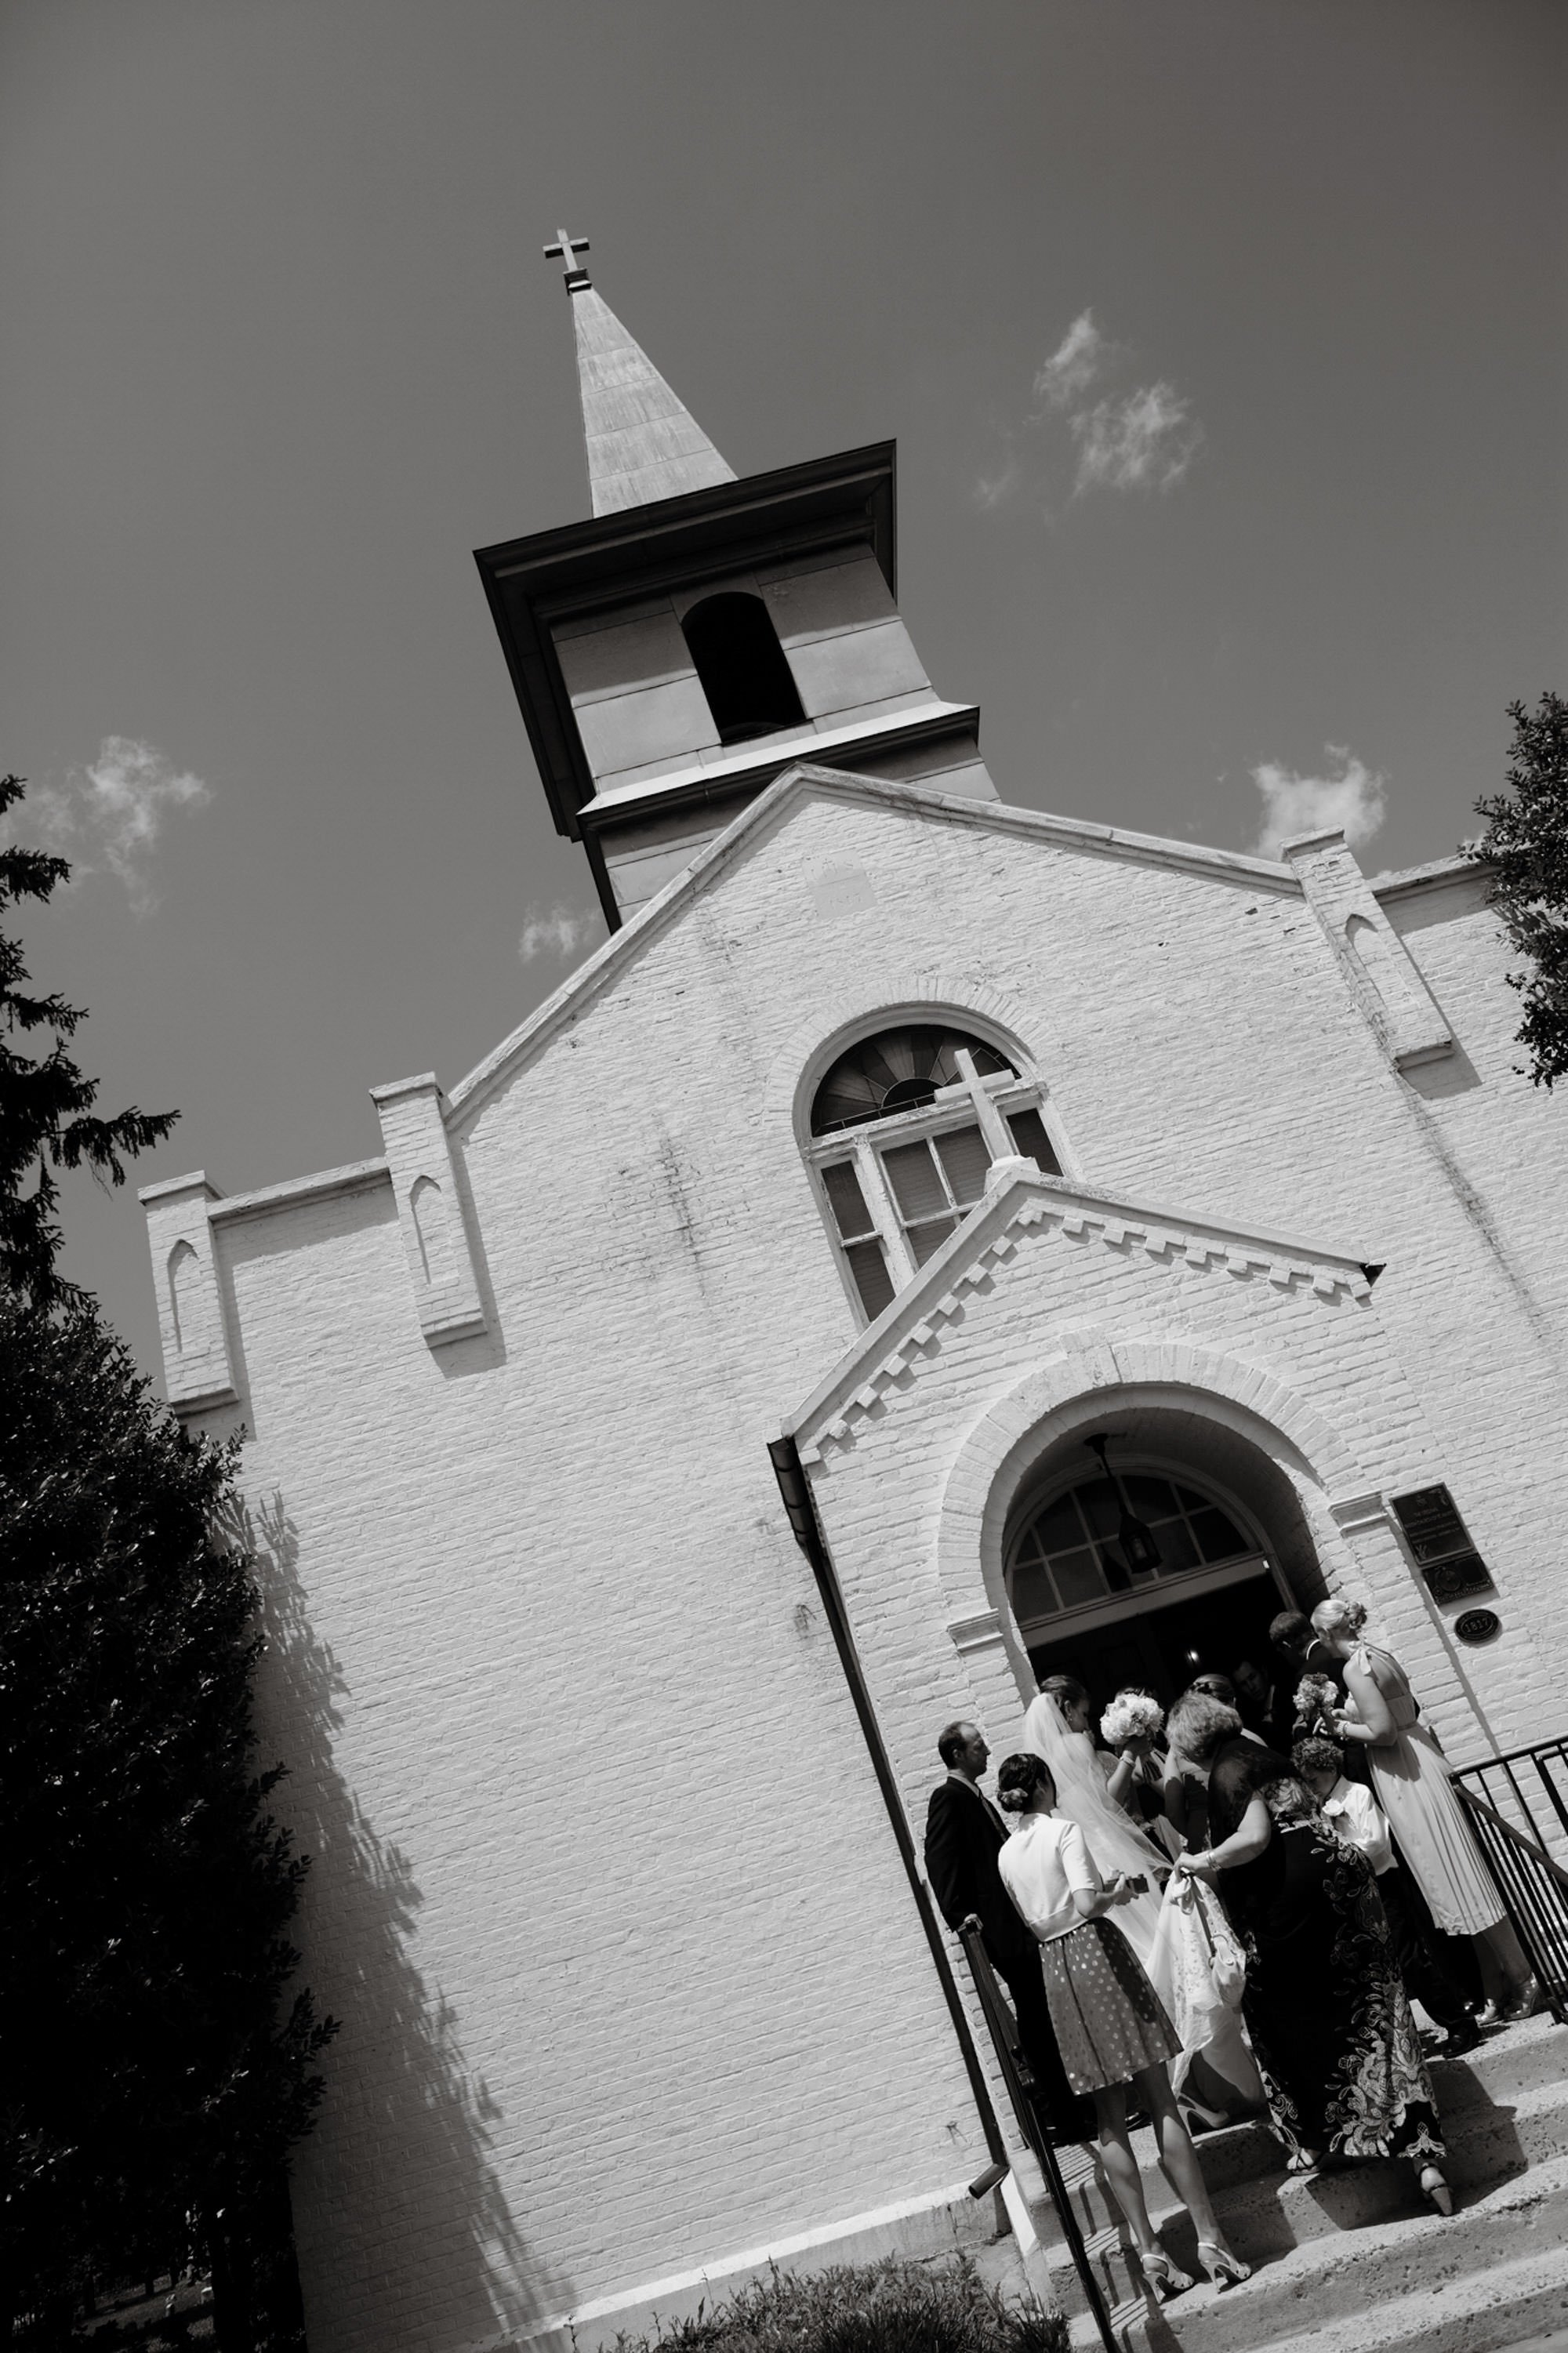 Guests arrive at St. Mary's Catholic Church in Rockville, MD.